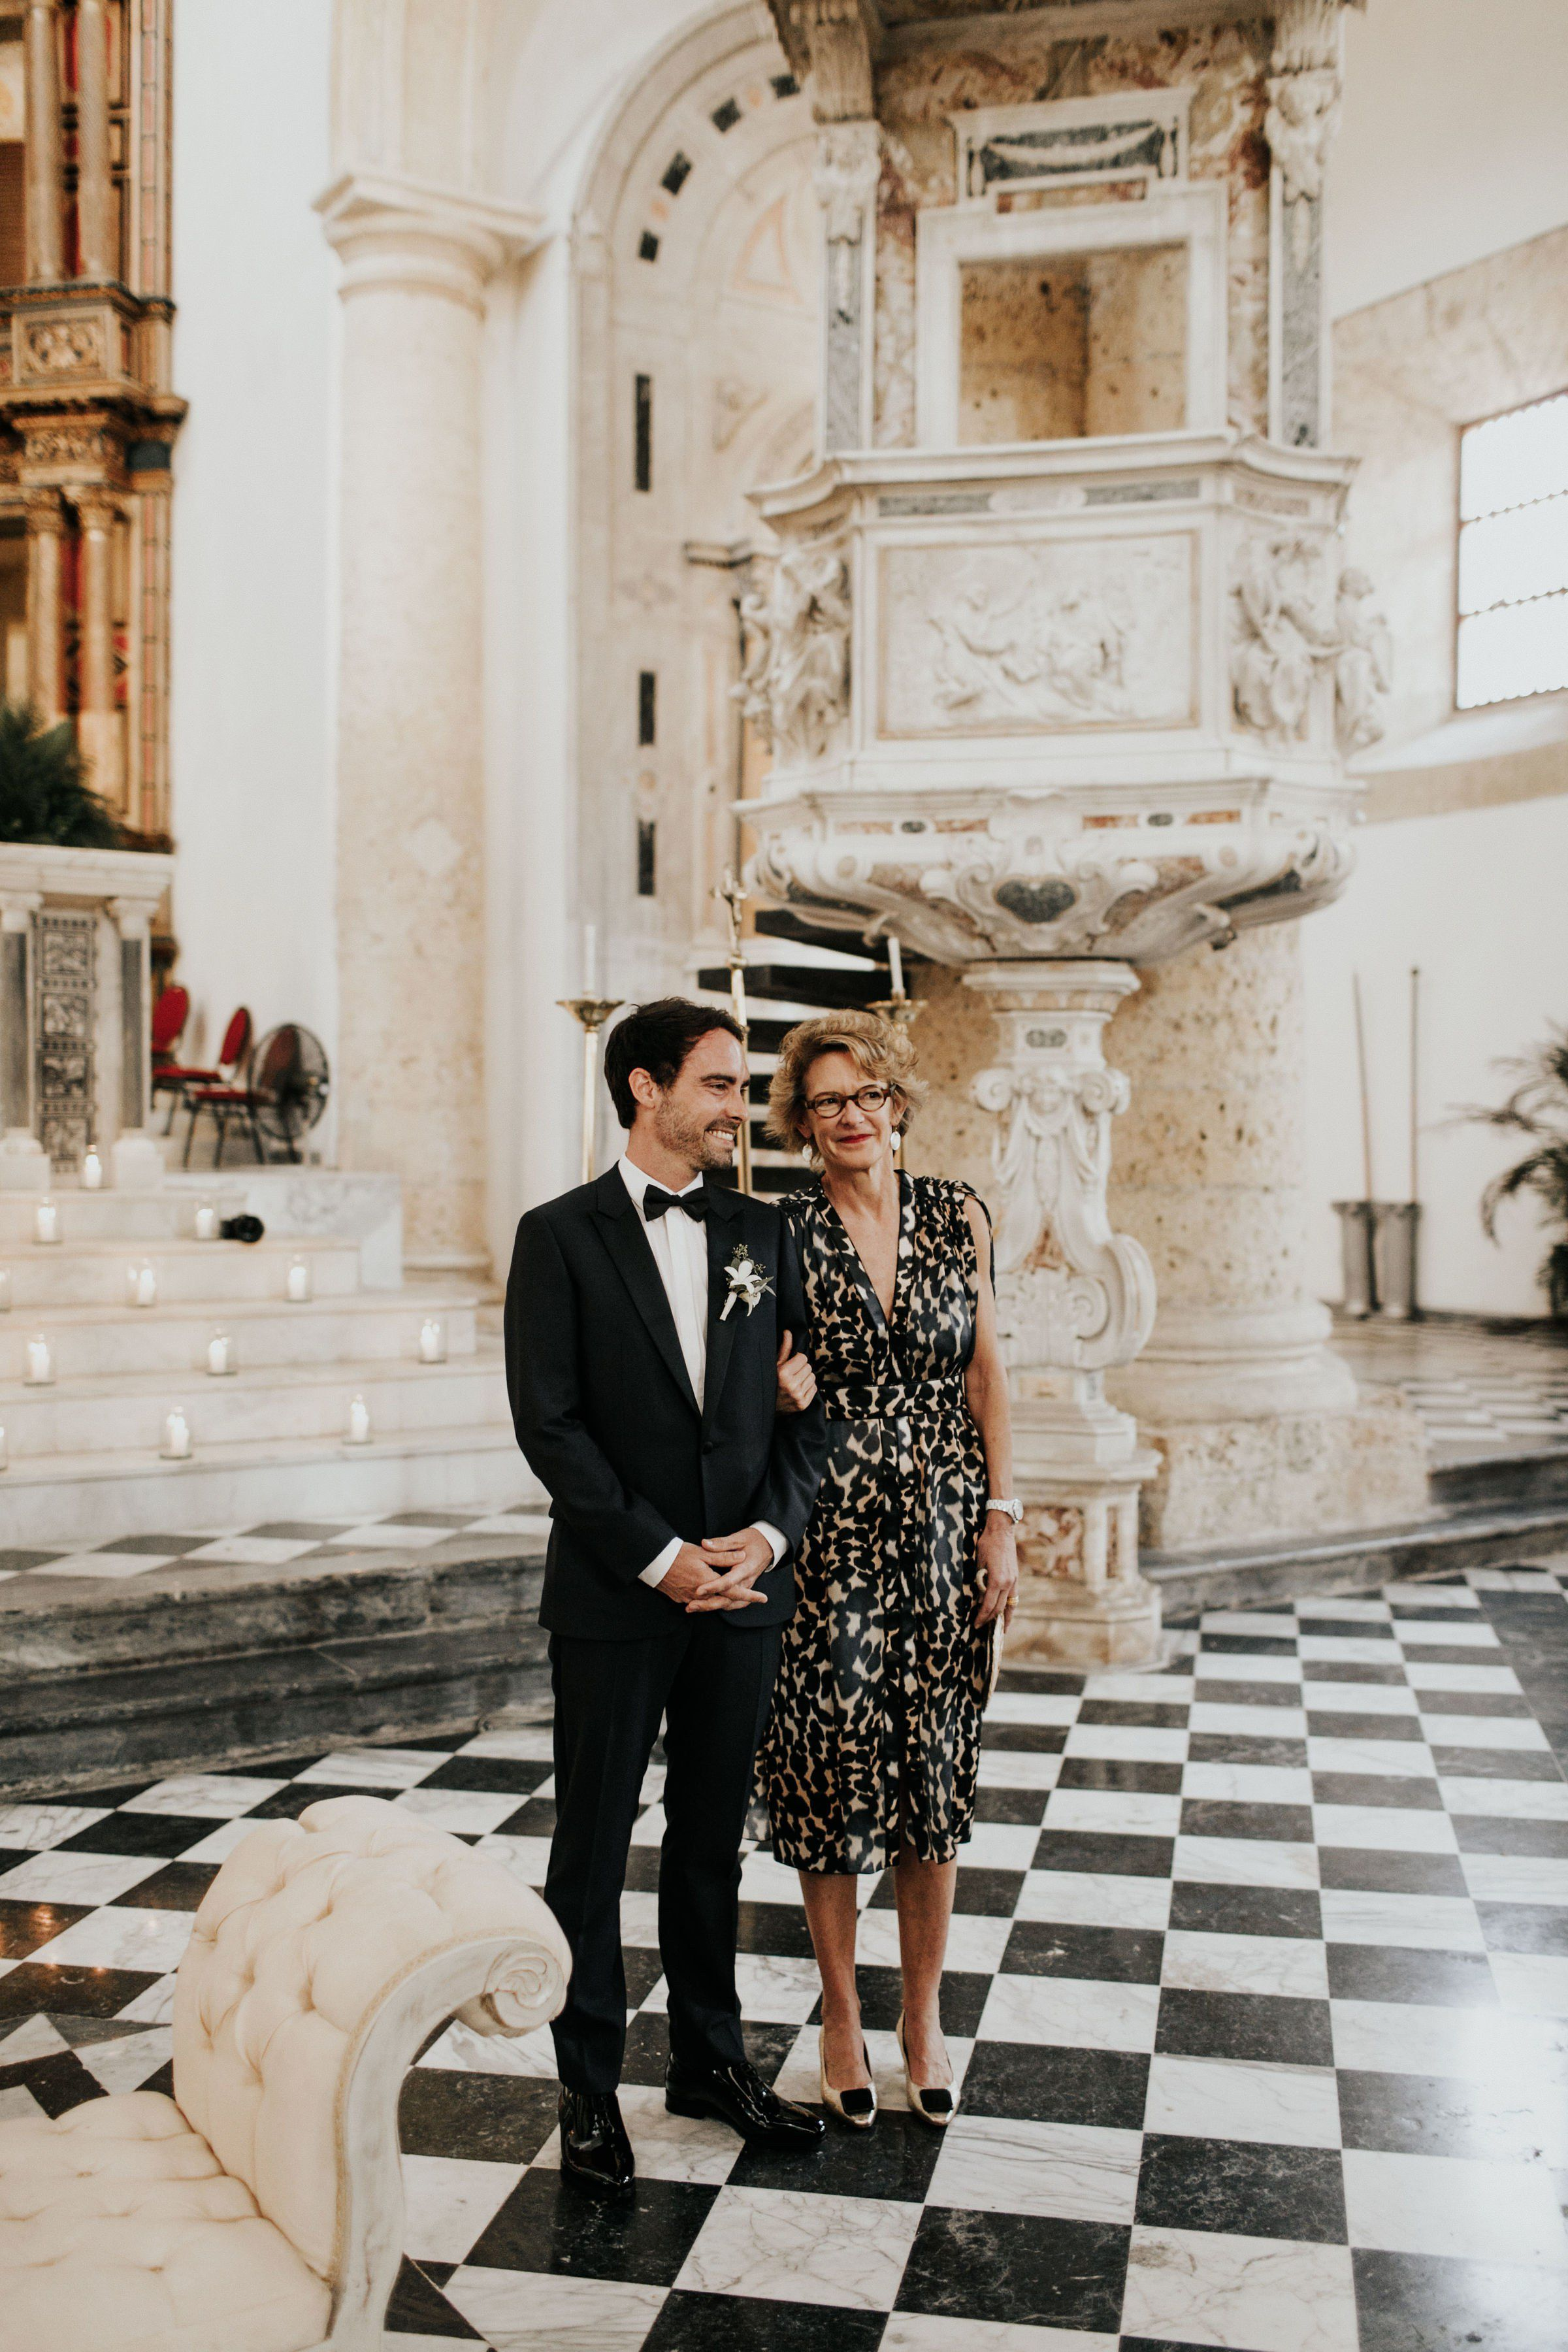 The 30 Best Mother Of The Groom Dresses Of 2020